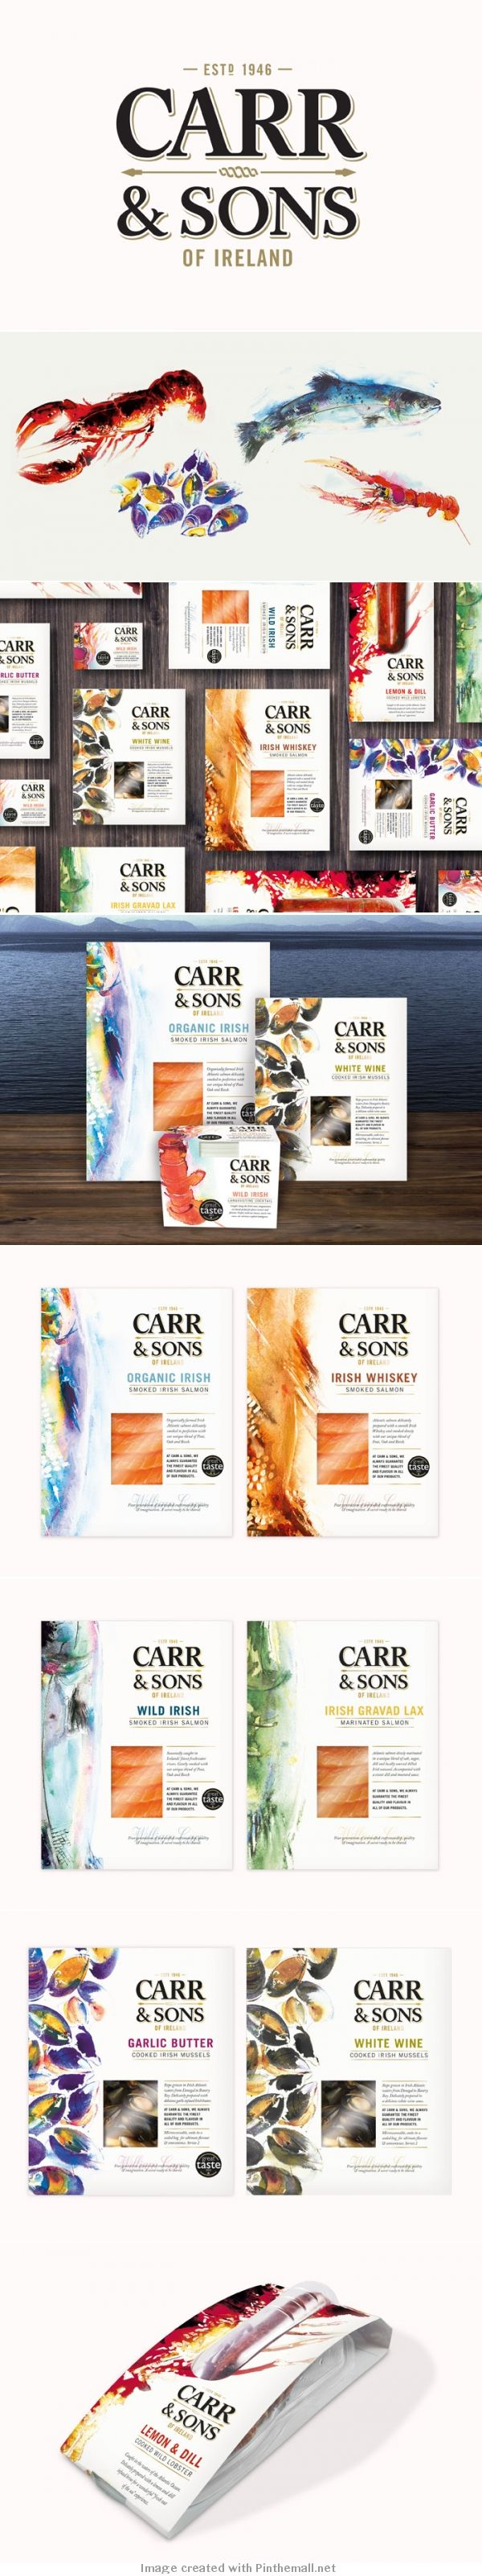 Corporate Design: Carr and Sons // Designed by Honey, UK // Art Work by Philipa Sincliar